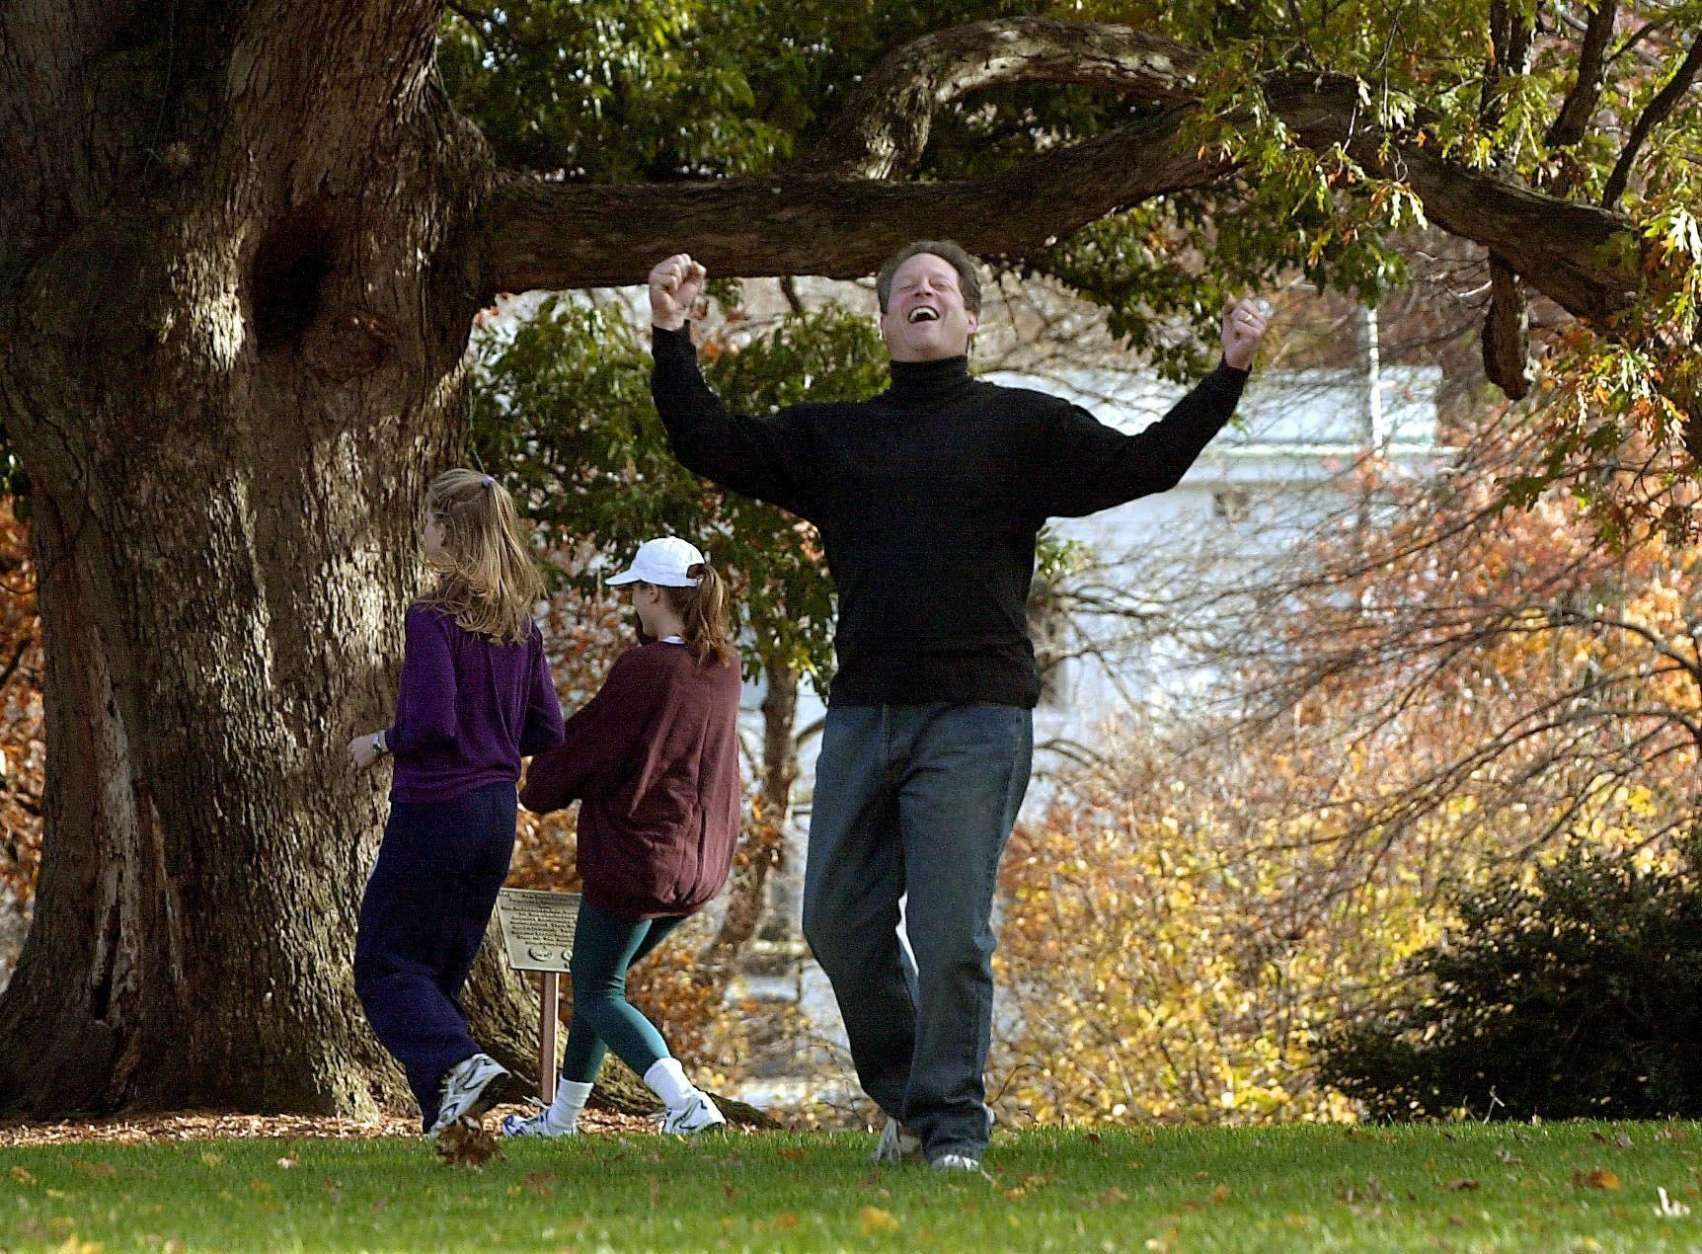 WASHINGTON, :  US Vice President Al Gore (R) celebrates scoring a touchdown as daughters Kristin (C) and Karenna (L) walk away during a touch football game with family members 10 November 2000 at the Vice President's residence in Washington, DC. Gore and Texas Governor George W. Bush are still waiting for results of the Florida vote count to determine the next US president.   AFP PHOTO/Joyce NALTCHAYAN (Photo credit should read JOYCE NALTCHAYAN/AFP/Getty Images)